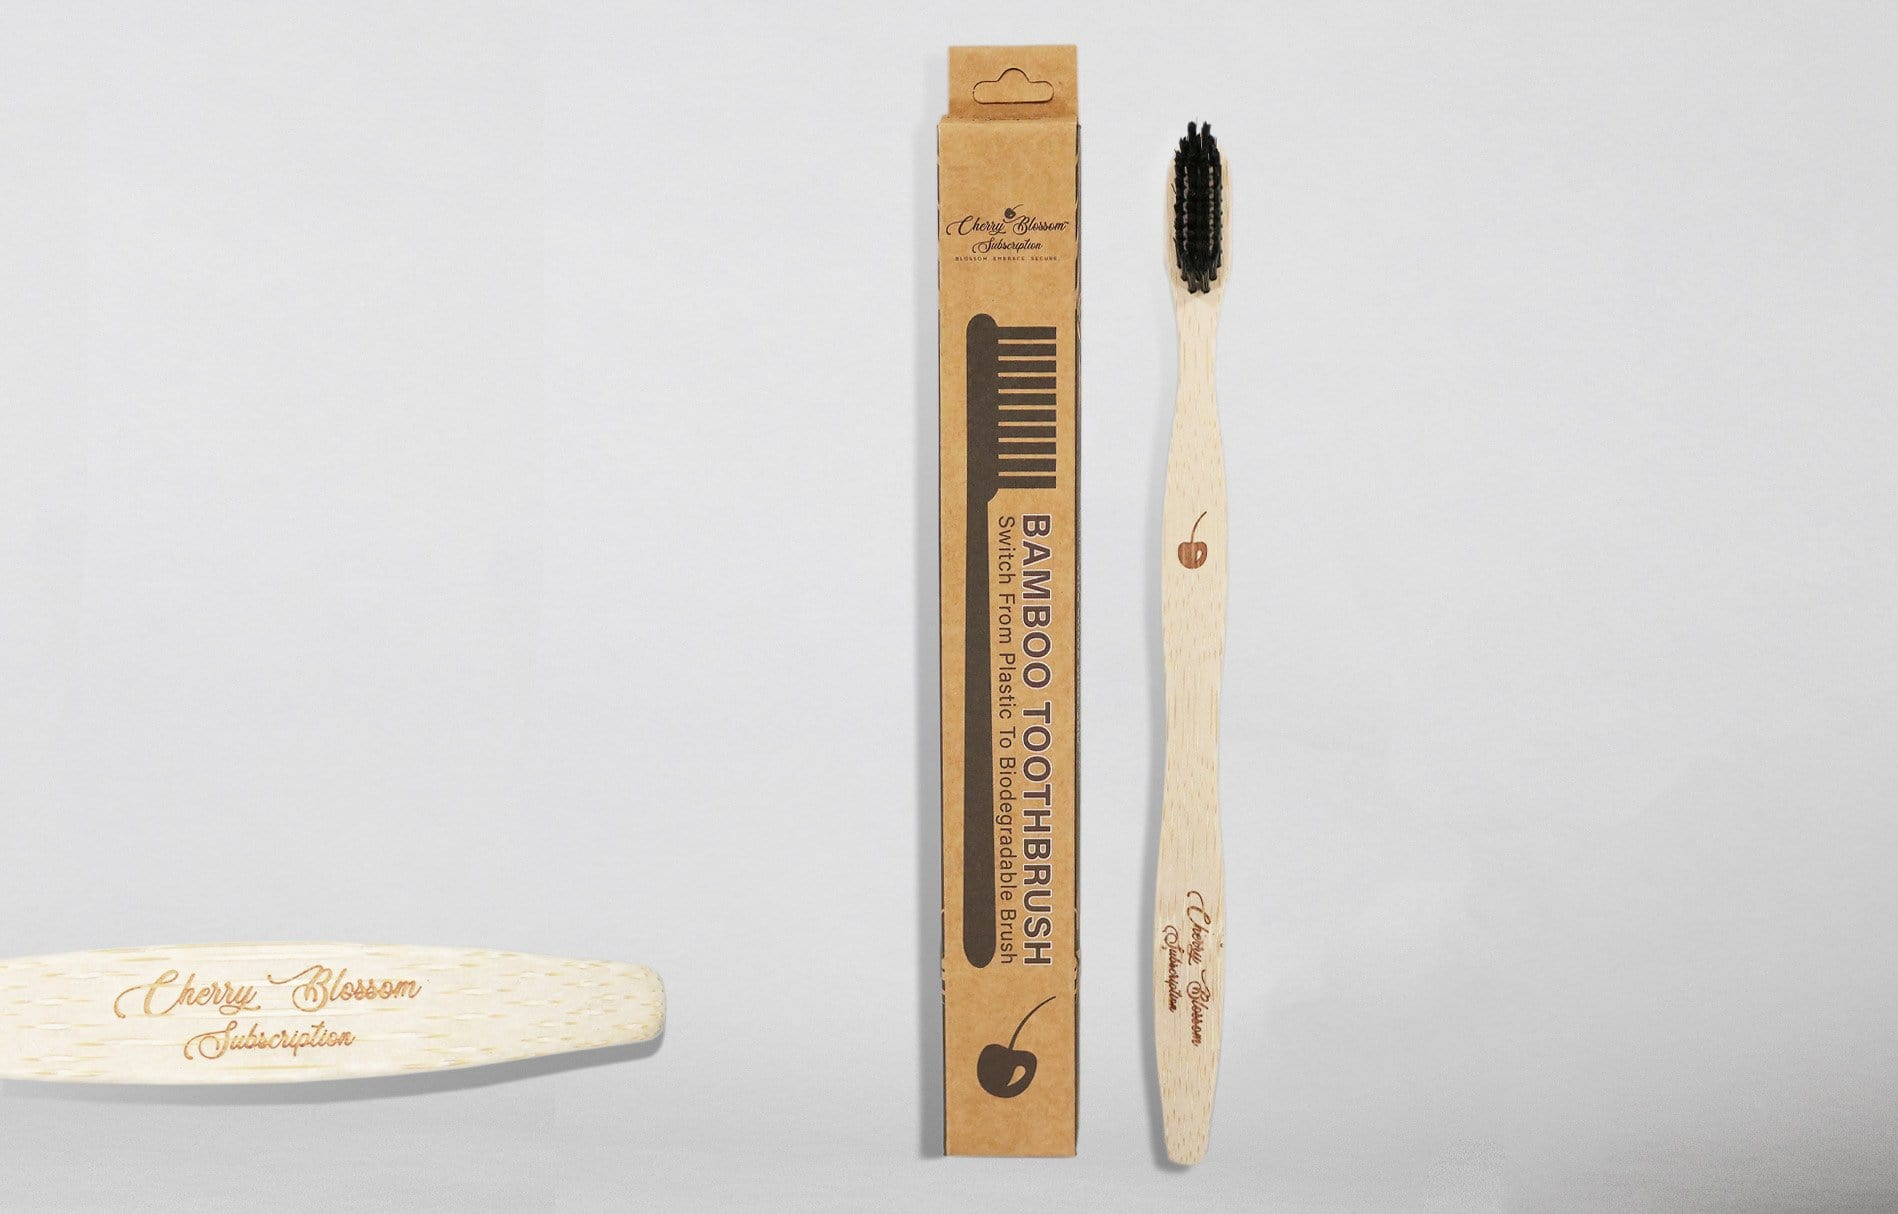 Organic Bamboo Toothbrush - Cherry Blossom Subscription